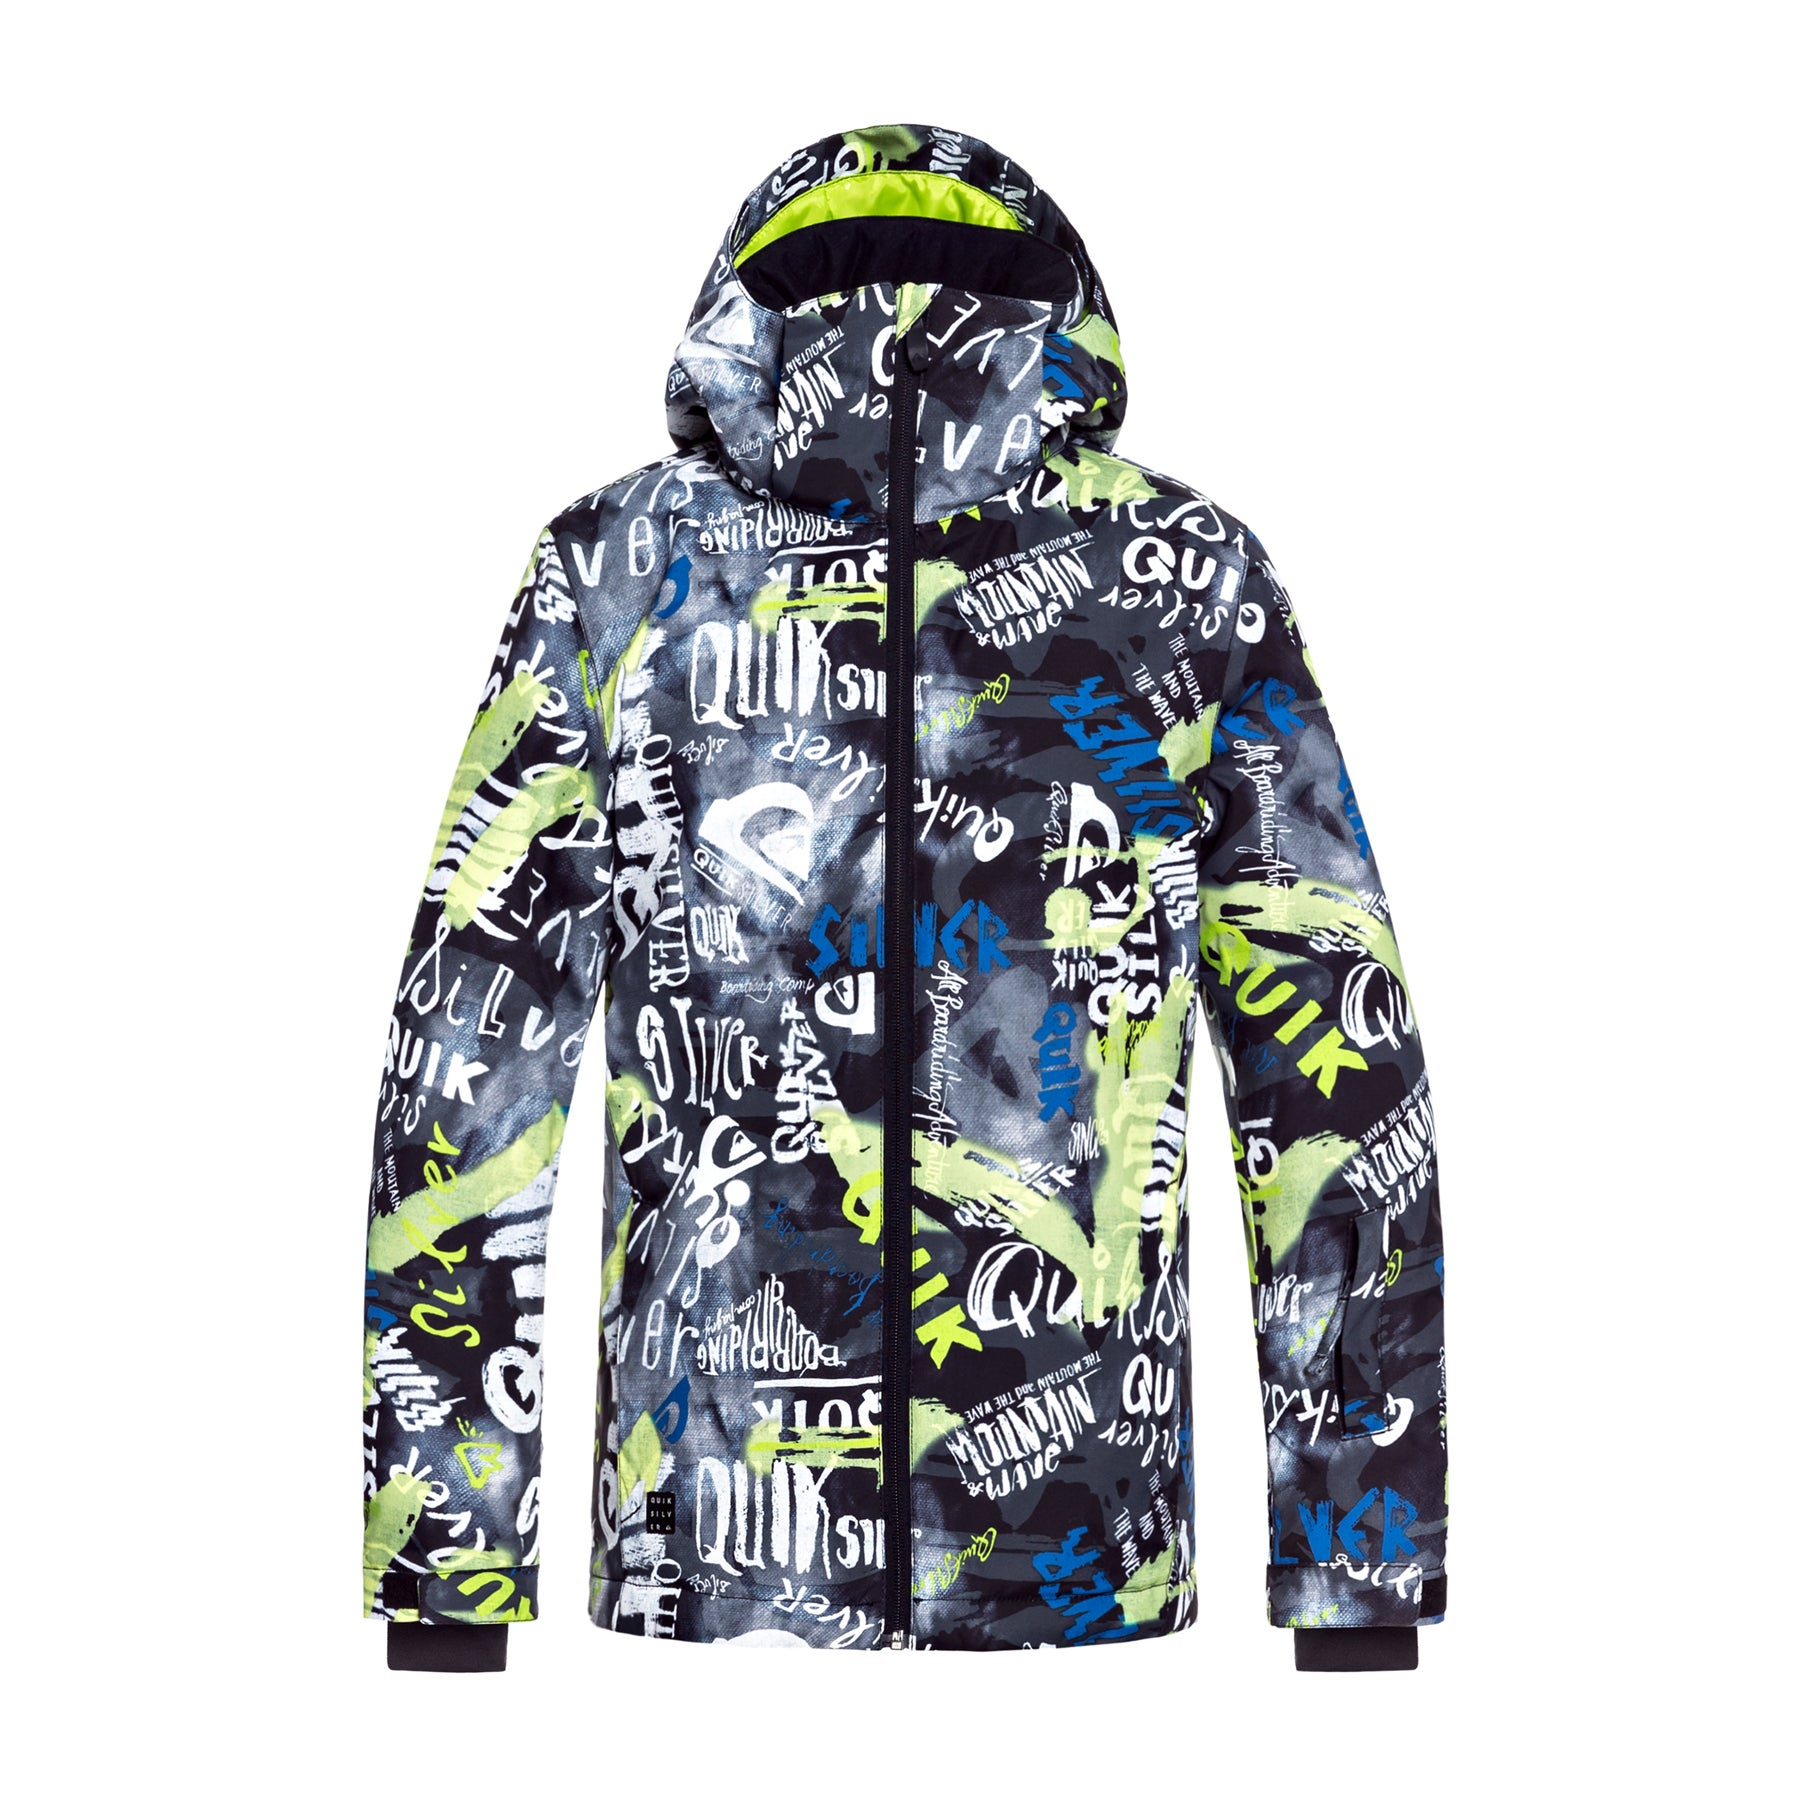 78d78eb26 Quiksilver Boys Mission Printed Kids Jacket Snowboard - Black ...